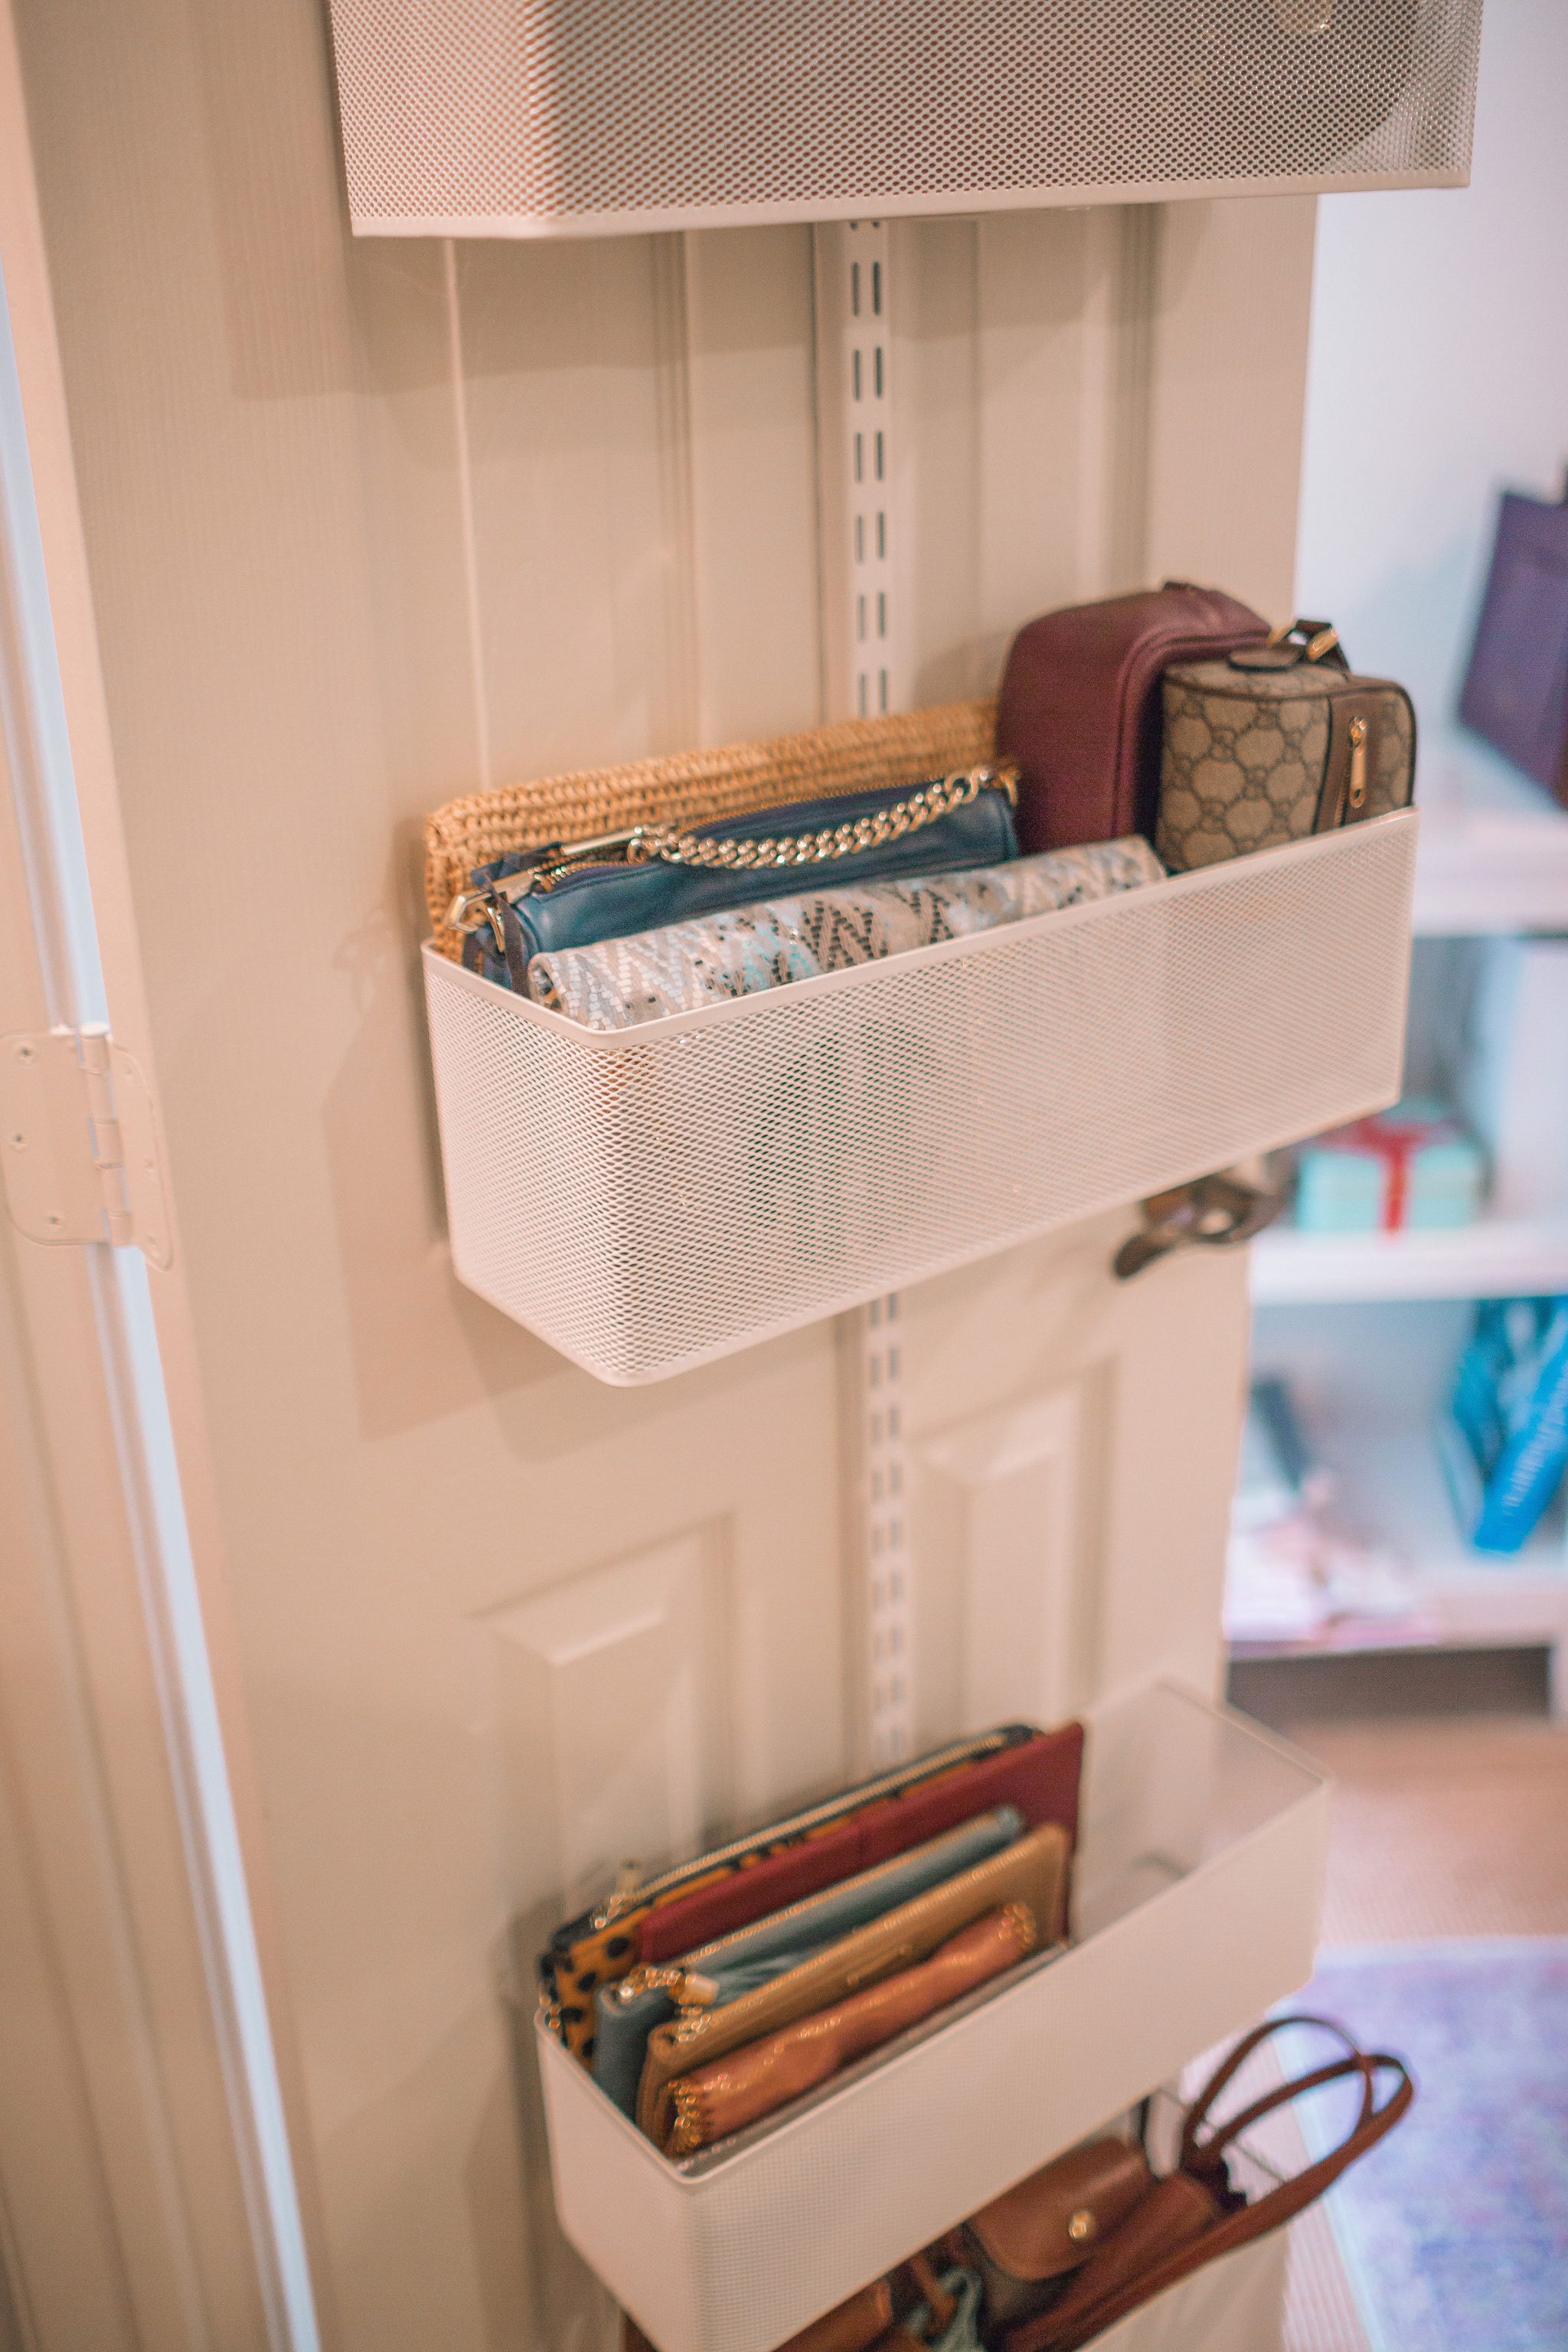 Elfa door storage units uses, organized closet | Adored by Alex